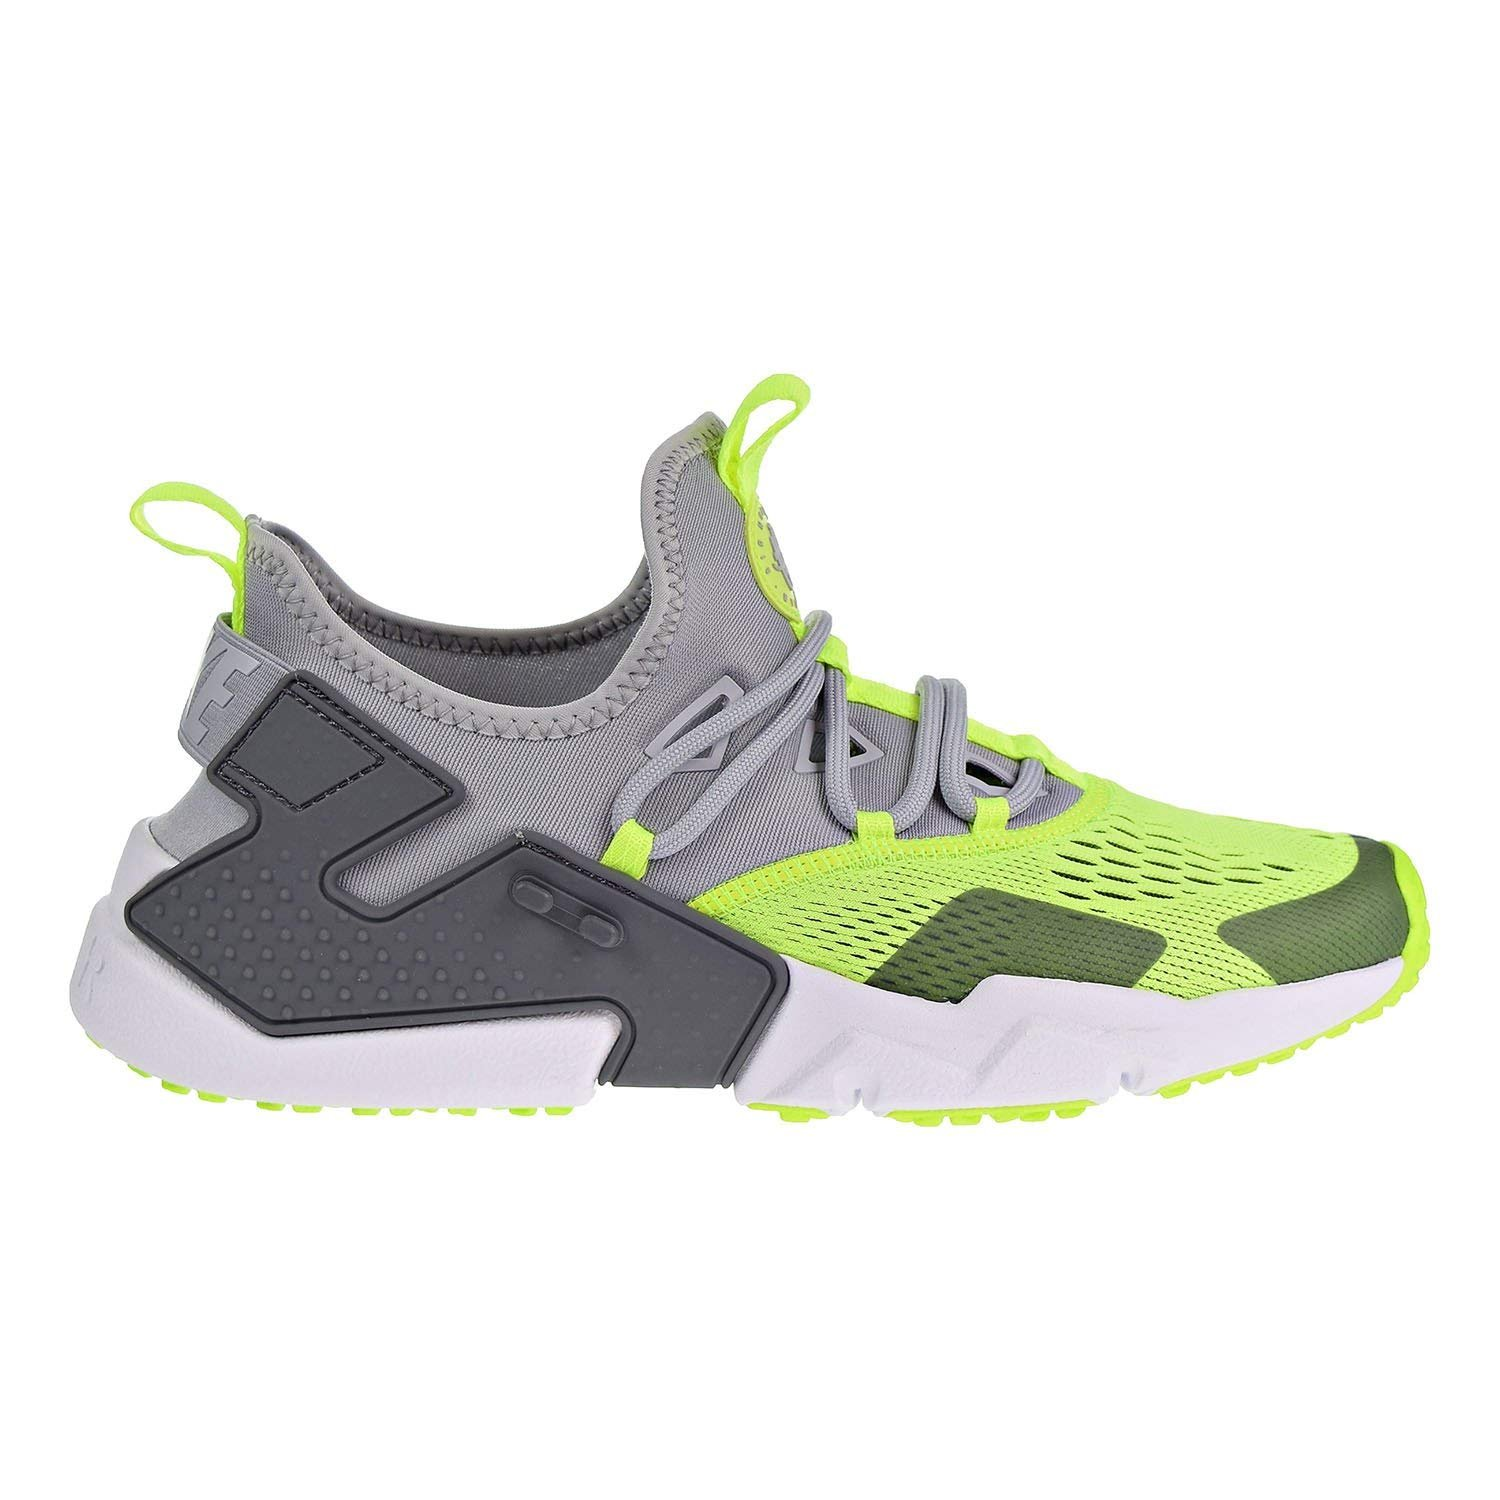 e408aafa68f Details about NIKE Men's Air Huarache Drift Breathe Mesh Trainers Shoe